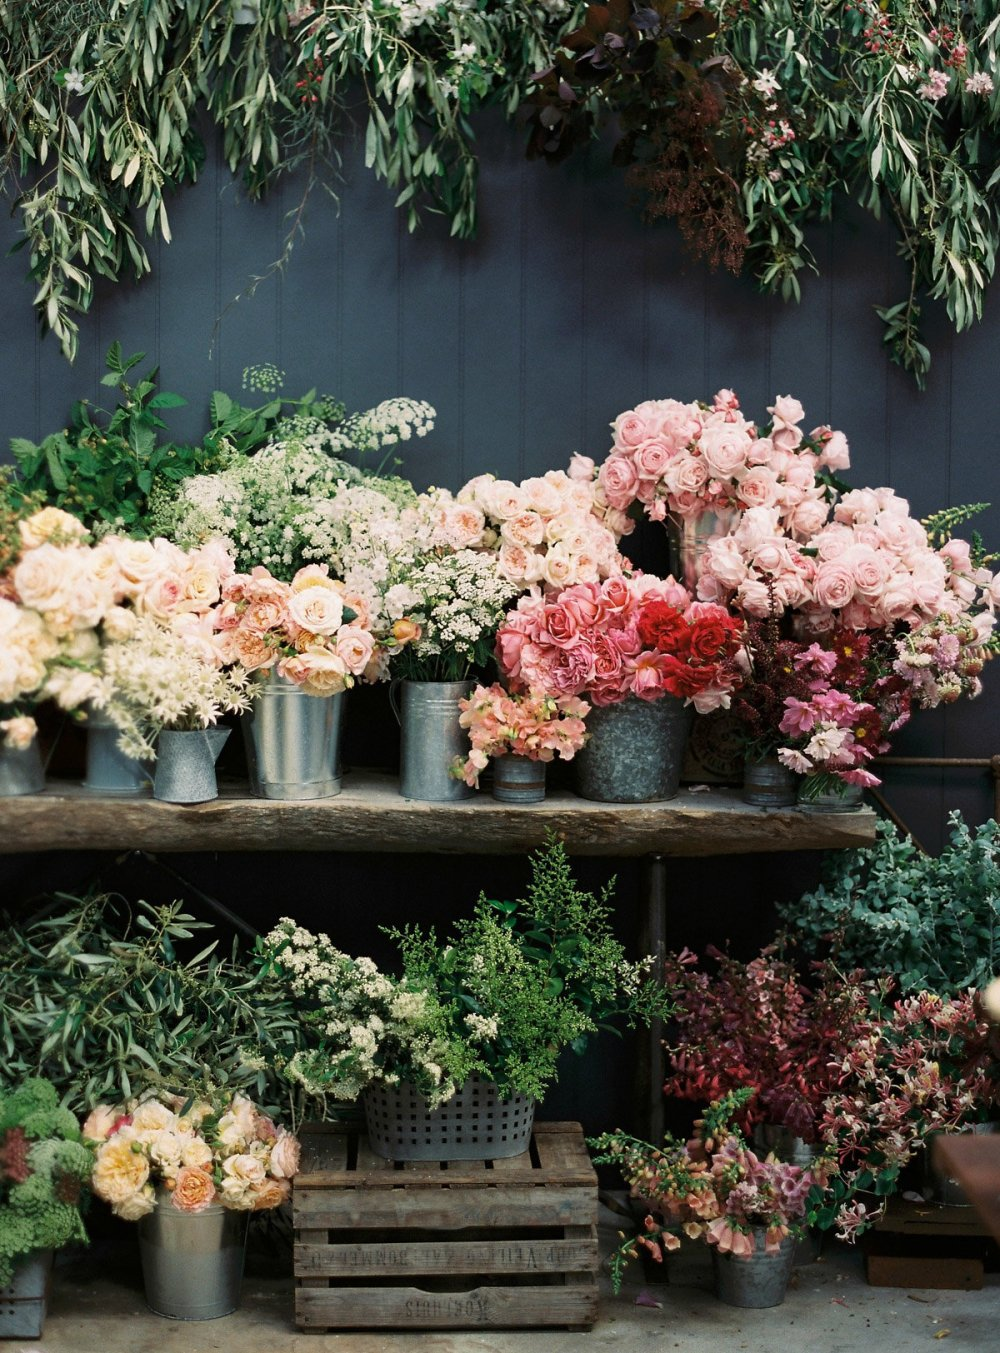 Many buckets of flowers